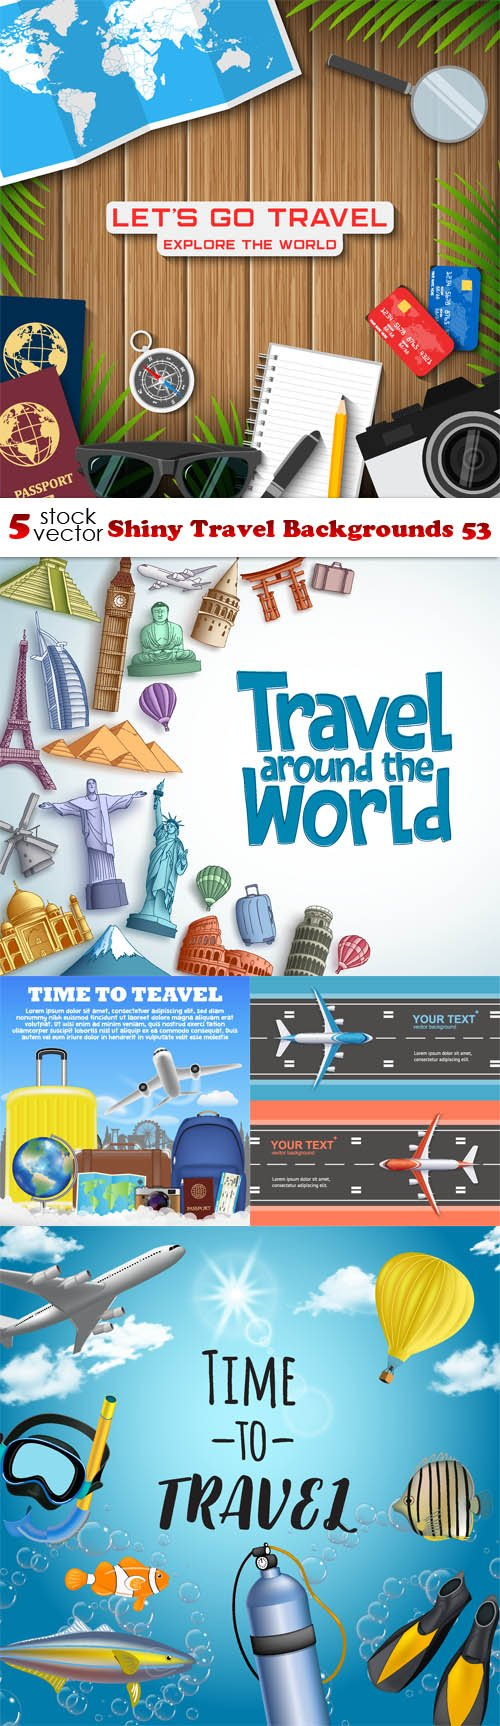 Vectors - Shiny Travel Backgrounds 53